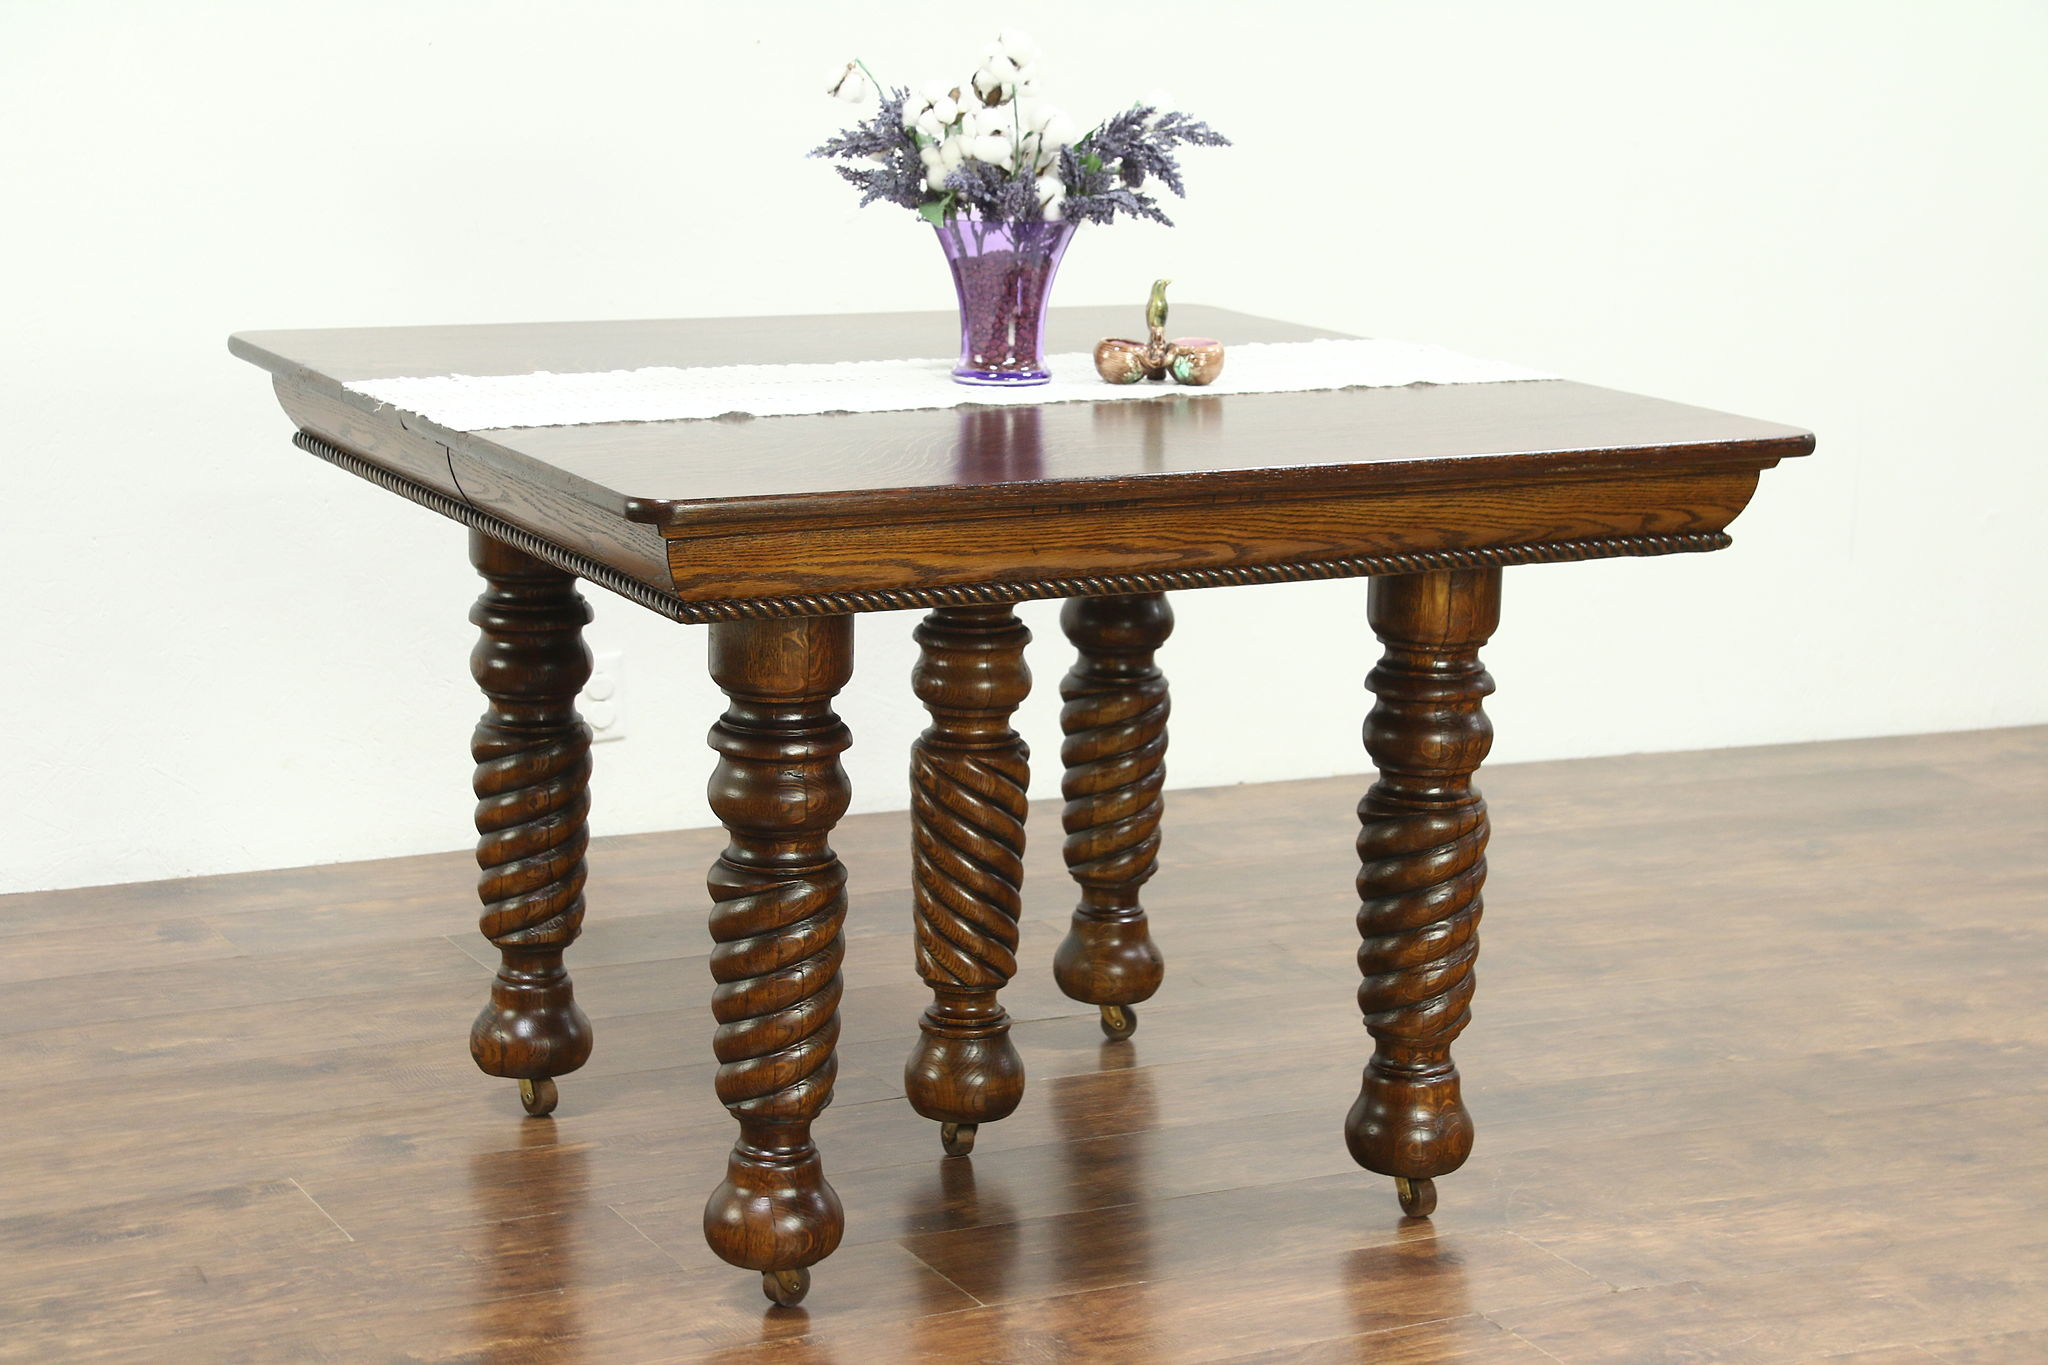 Oak Antique 1900 Square Dining Table 4 Leaves 5 Spiral Legs